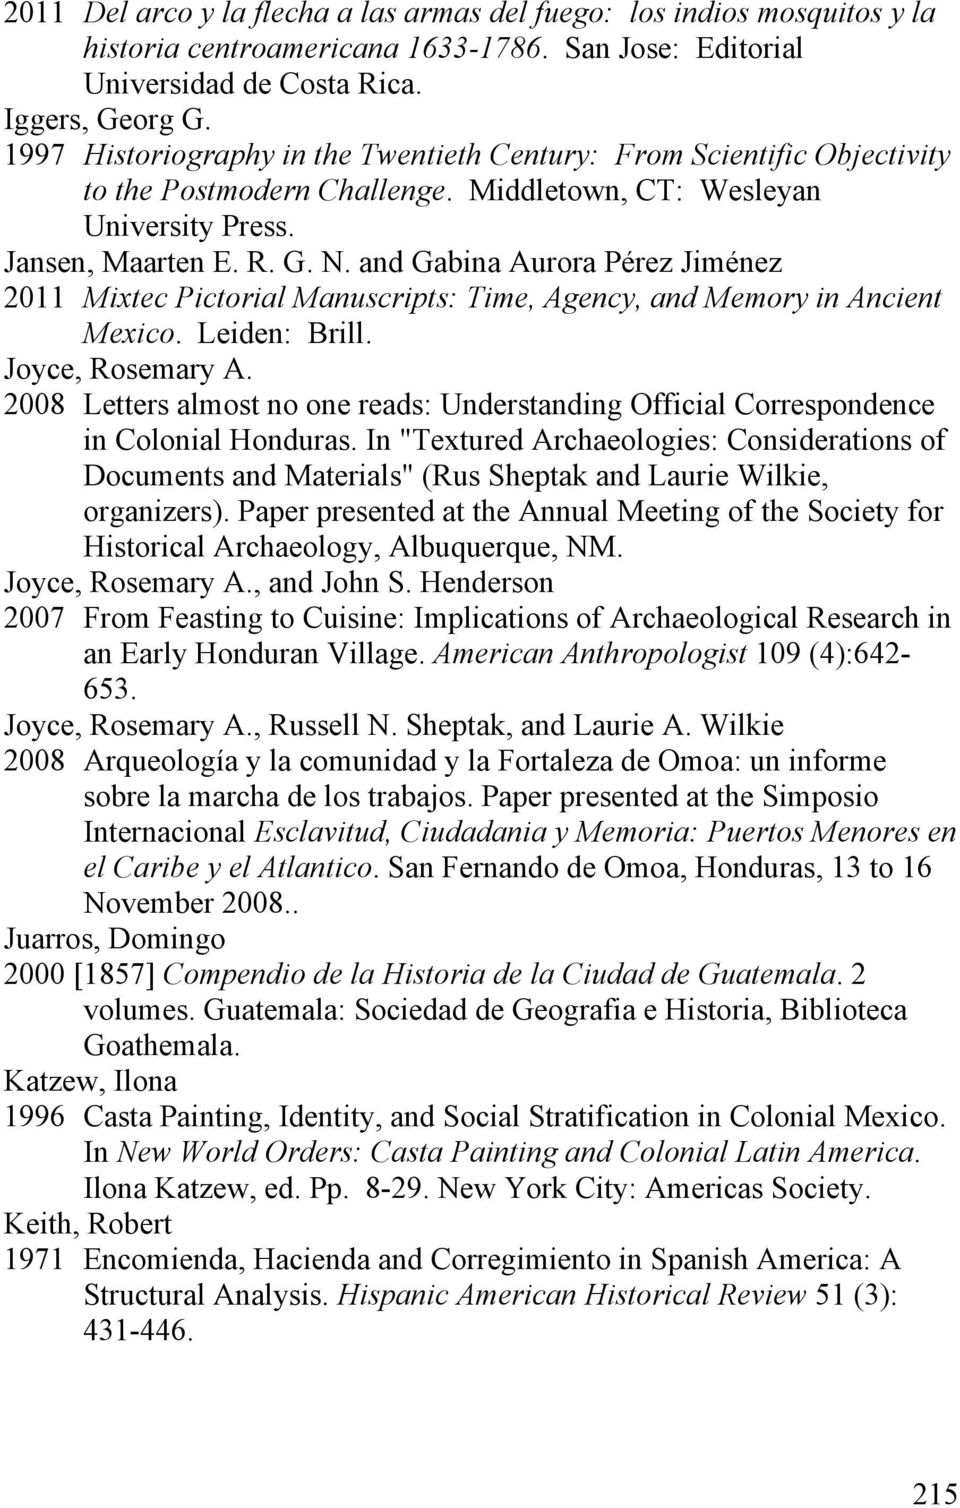 and Gabina Aurora Pérez Jiménez 2011 Mixtec Pictorial Manuscripts: Time, Agency, and Memory in Ancient Mexico. Leiden: Brill. Joyce, Rosemary A.